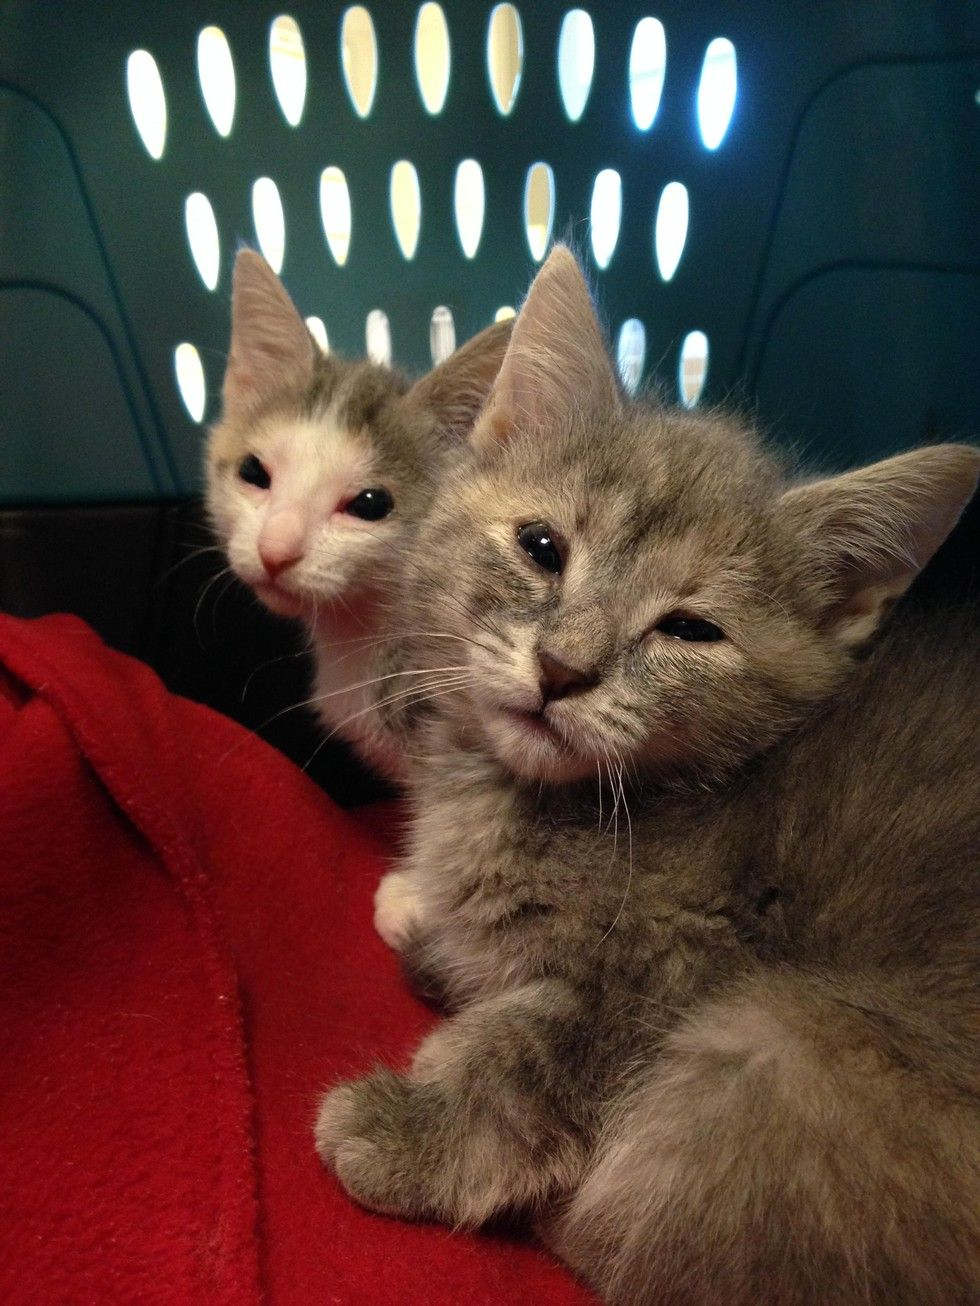 Help 2 Homeless Kittens Born Without Eyelids Get Lifesaving Surgery Kittens Brave Animals Cats And Kittens